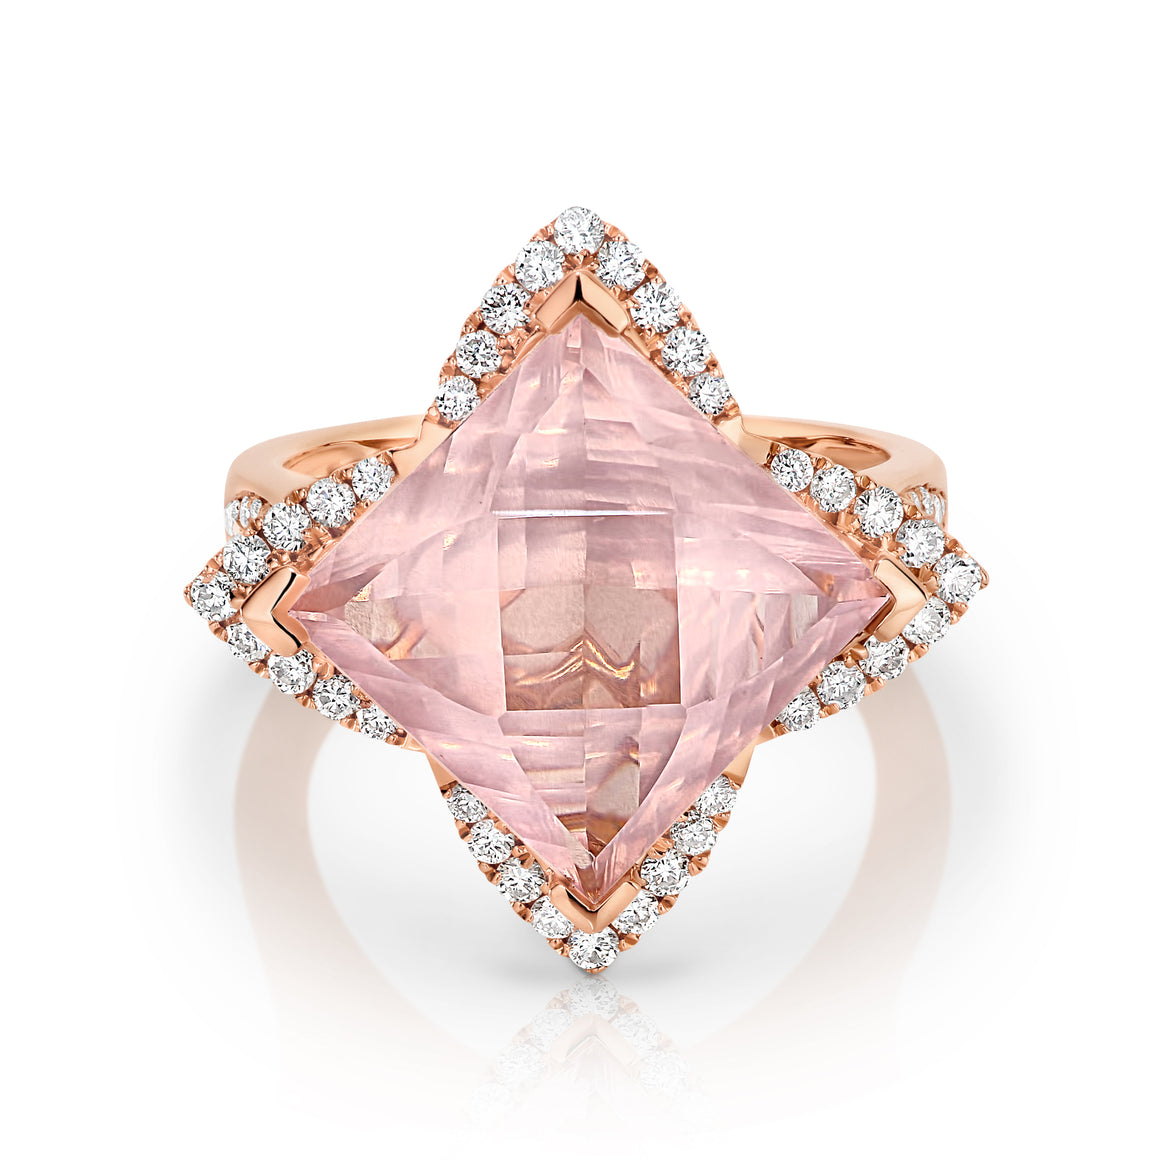 Rose Quartz & Diamond 'Nora' Ring - Gemma Stone  ABN:51 621 127 866